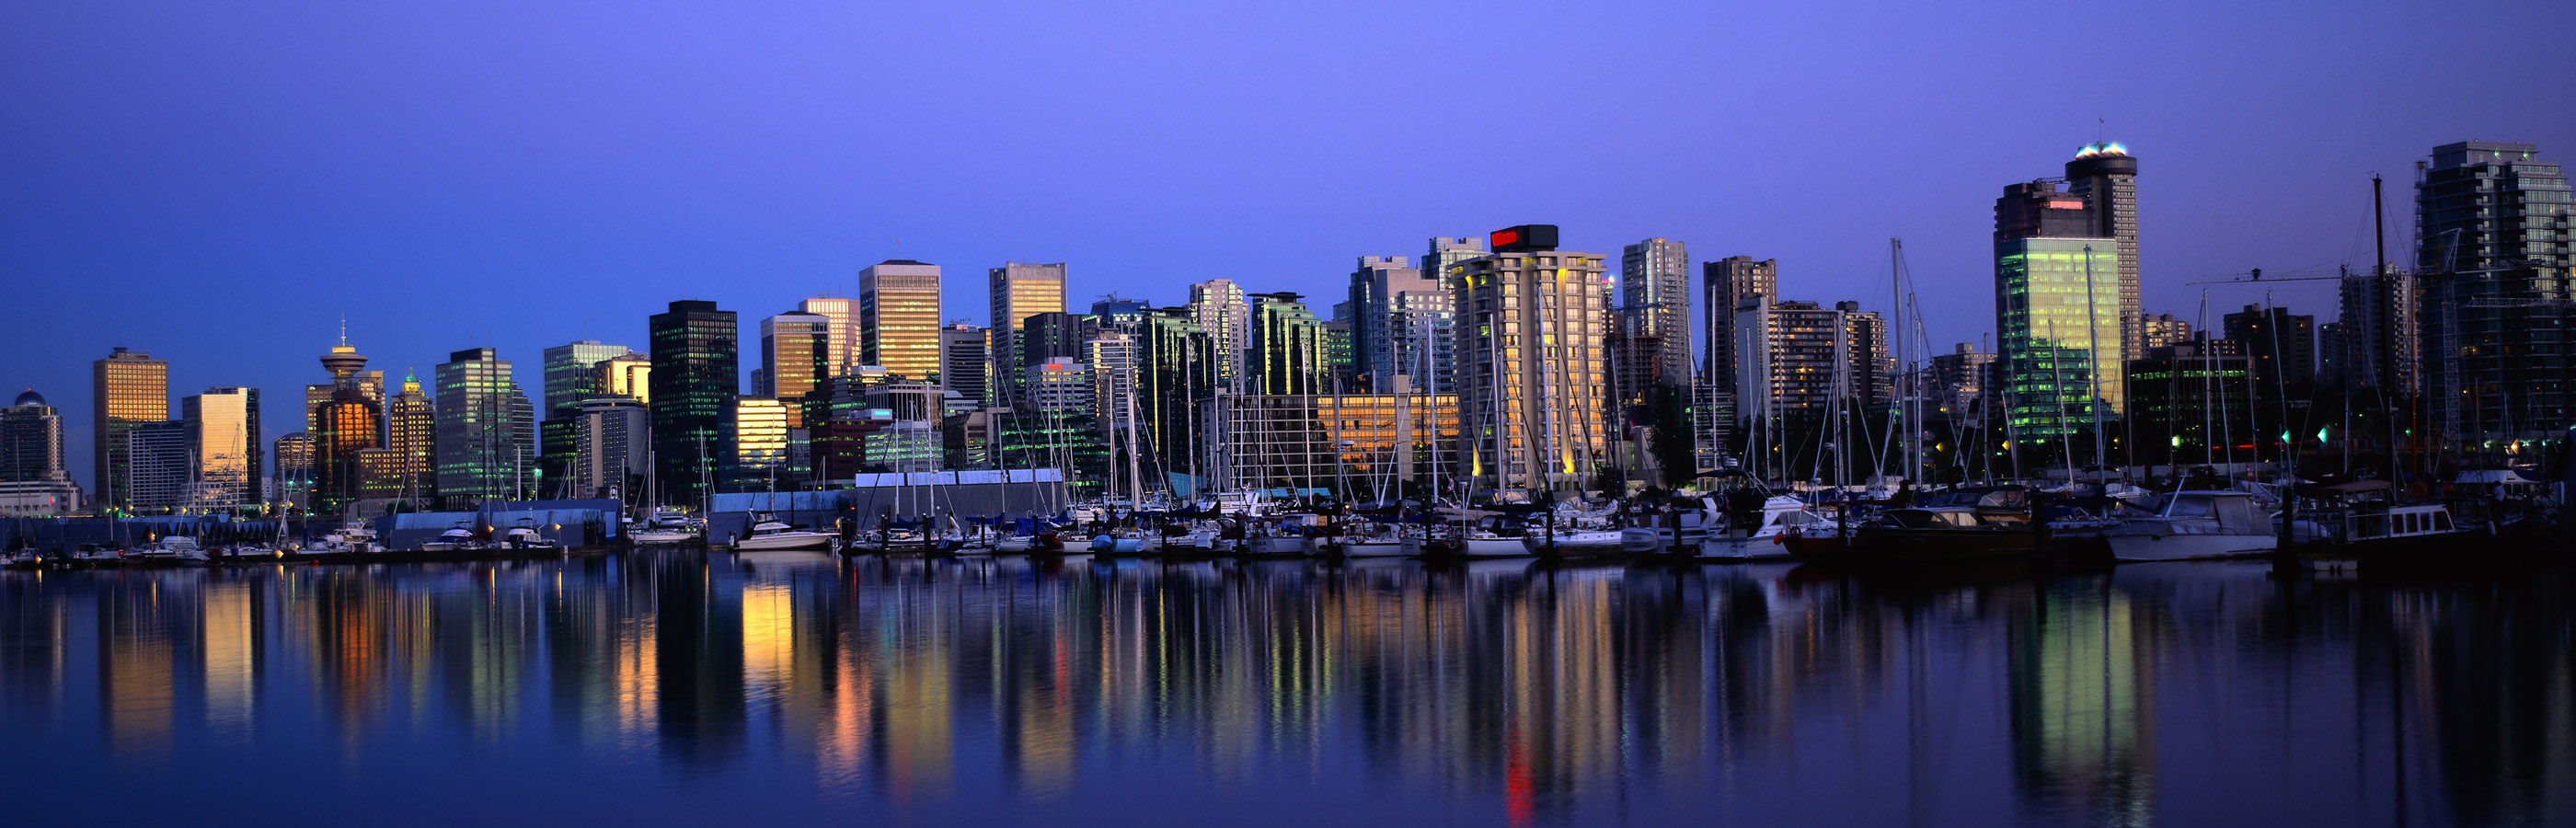 vancouver skyline wallpapers widescreen - photo #14